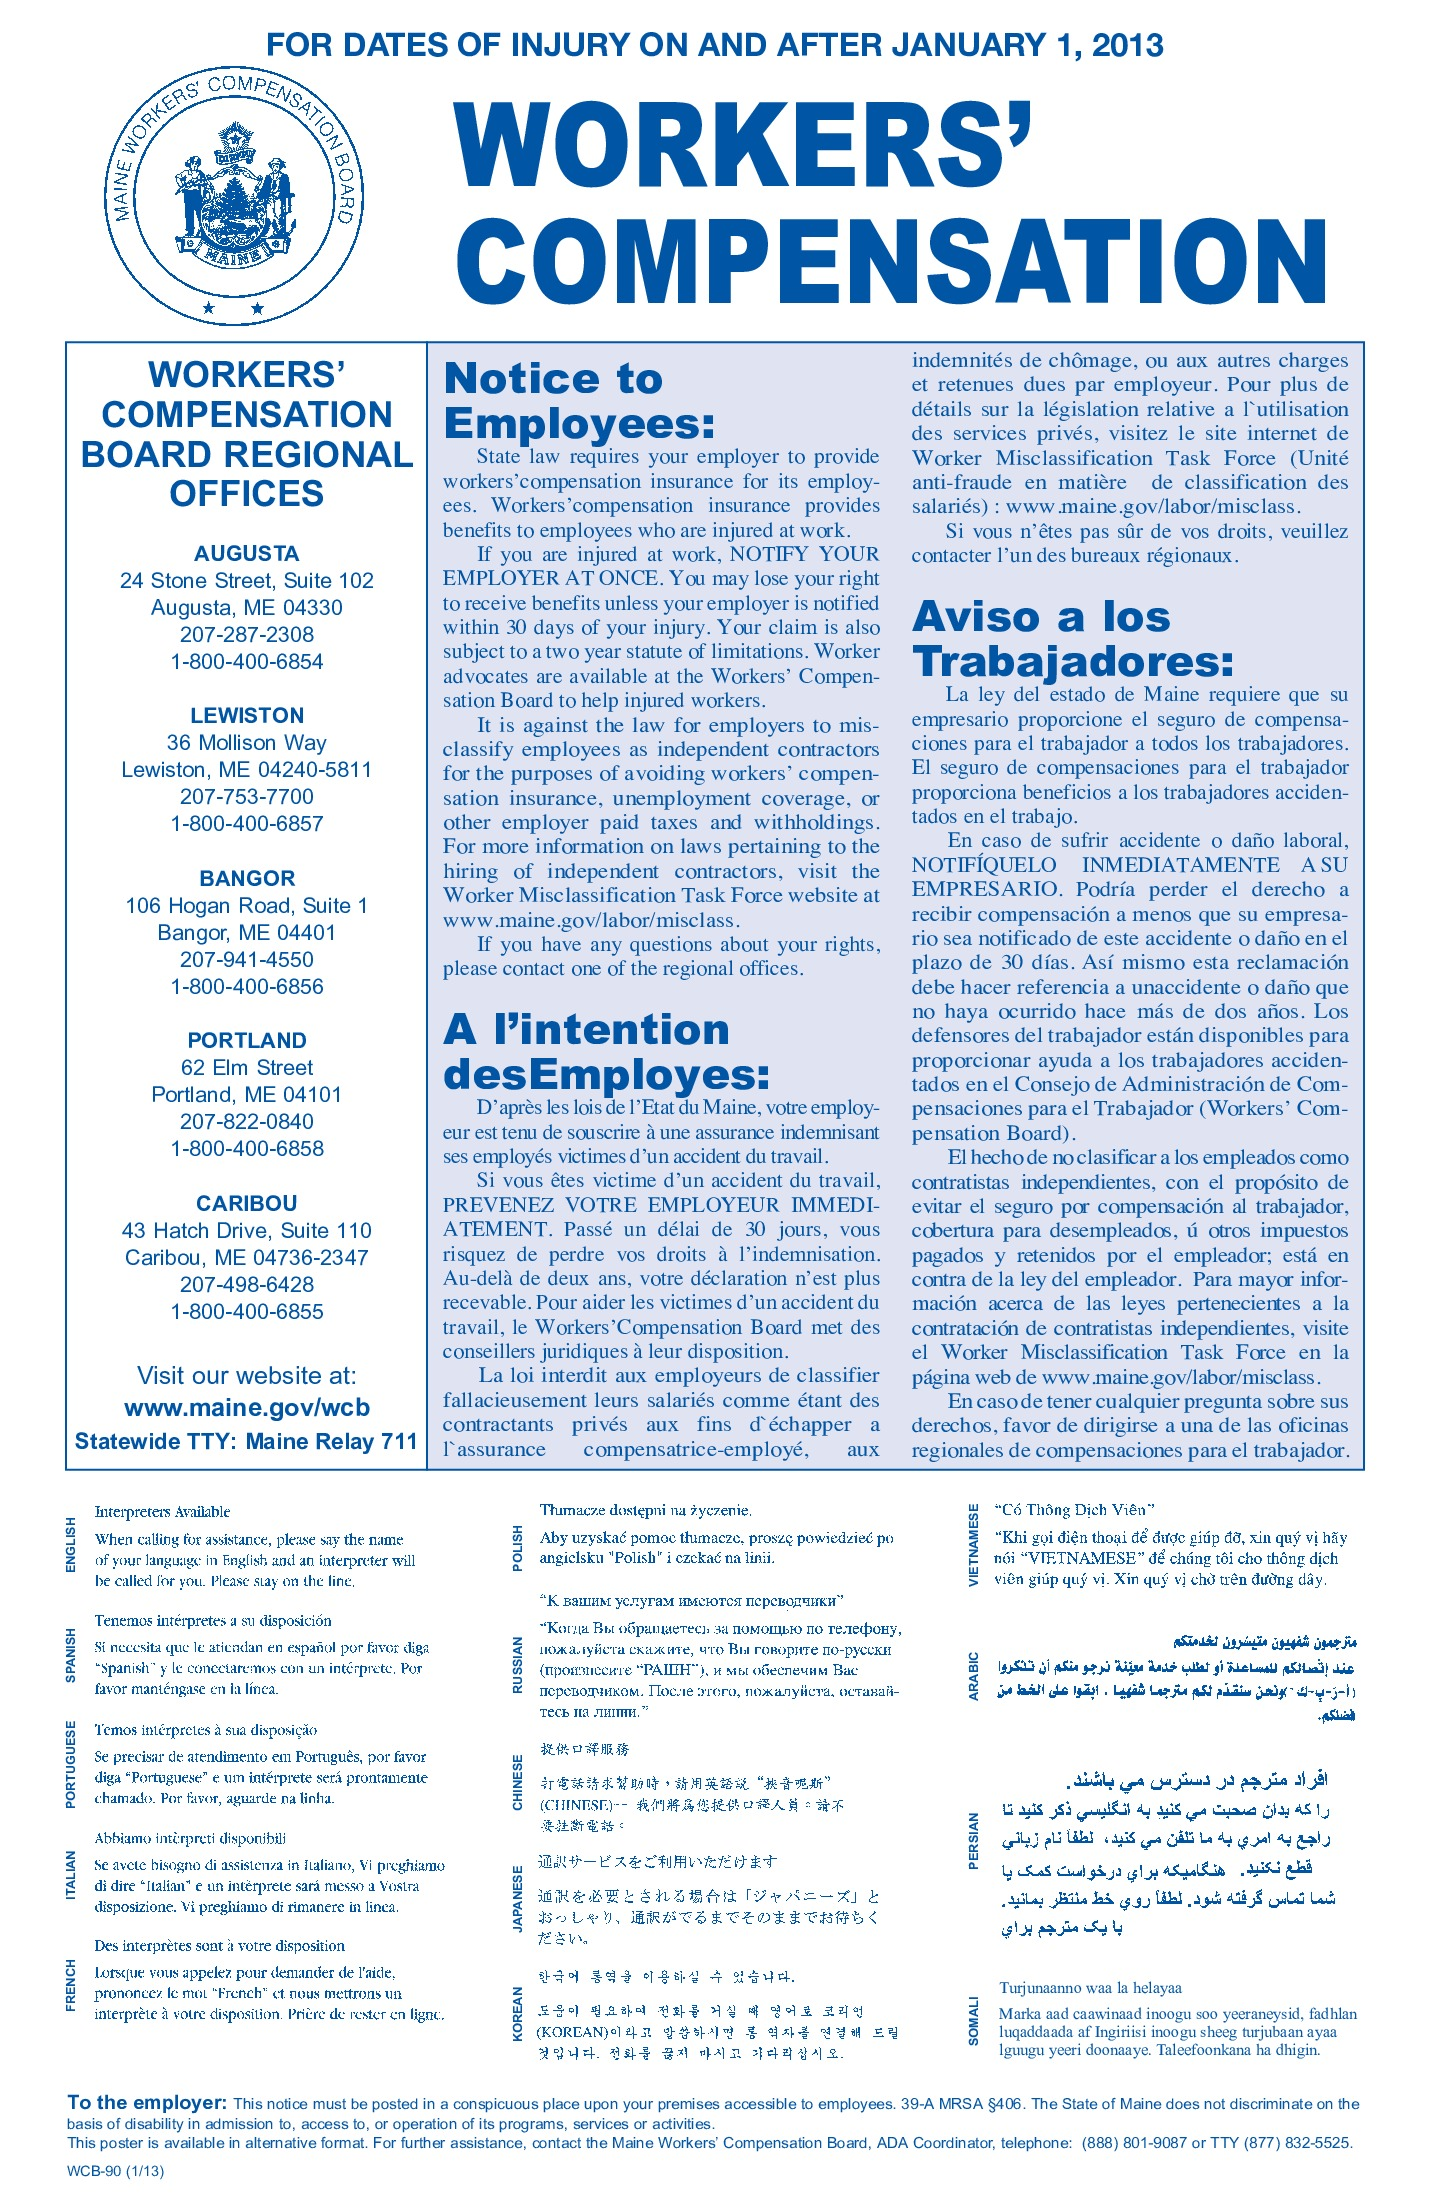 free maine maine workers compensation